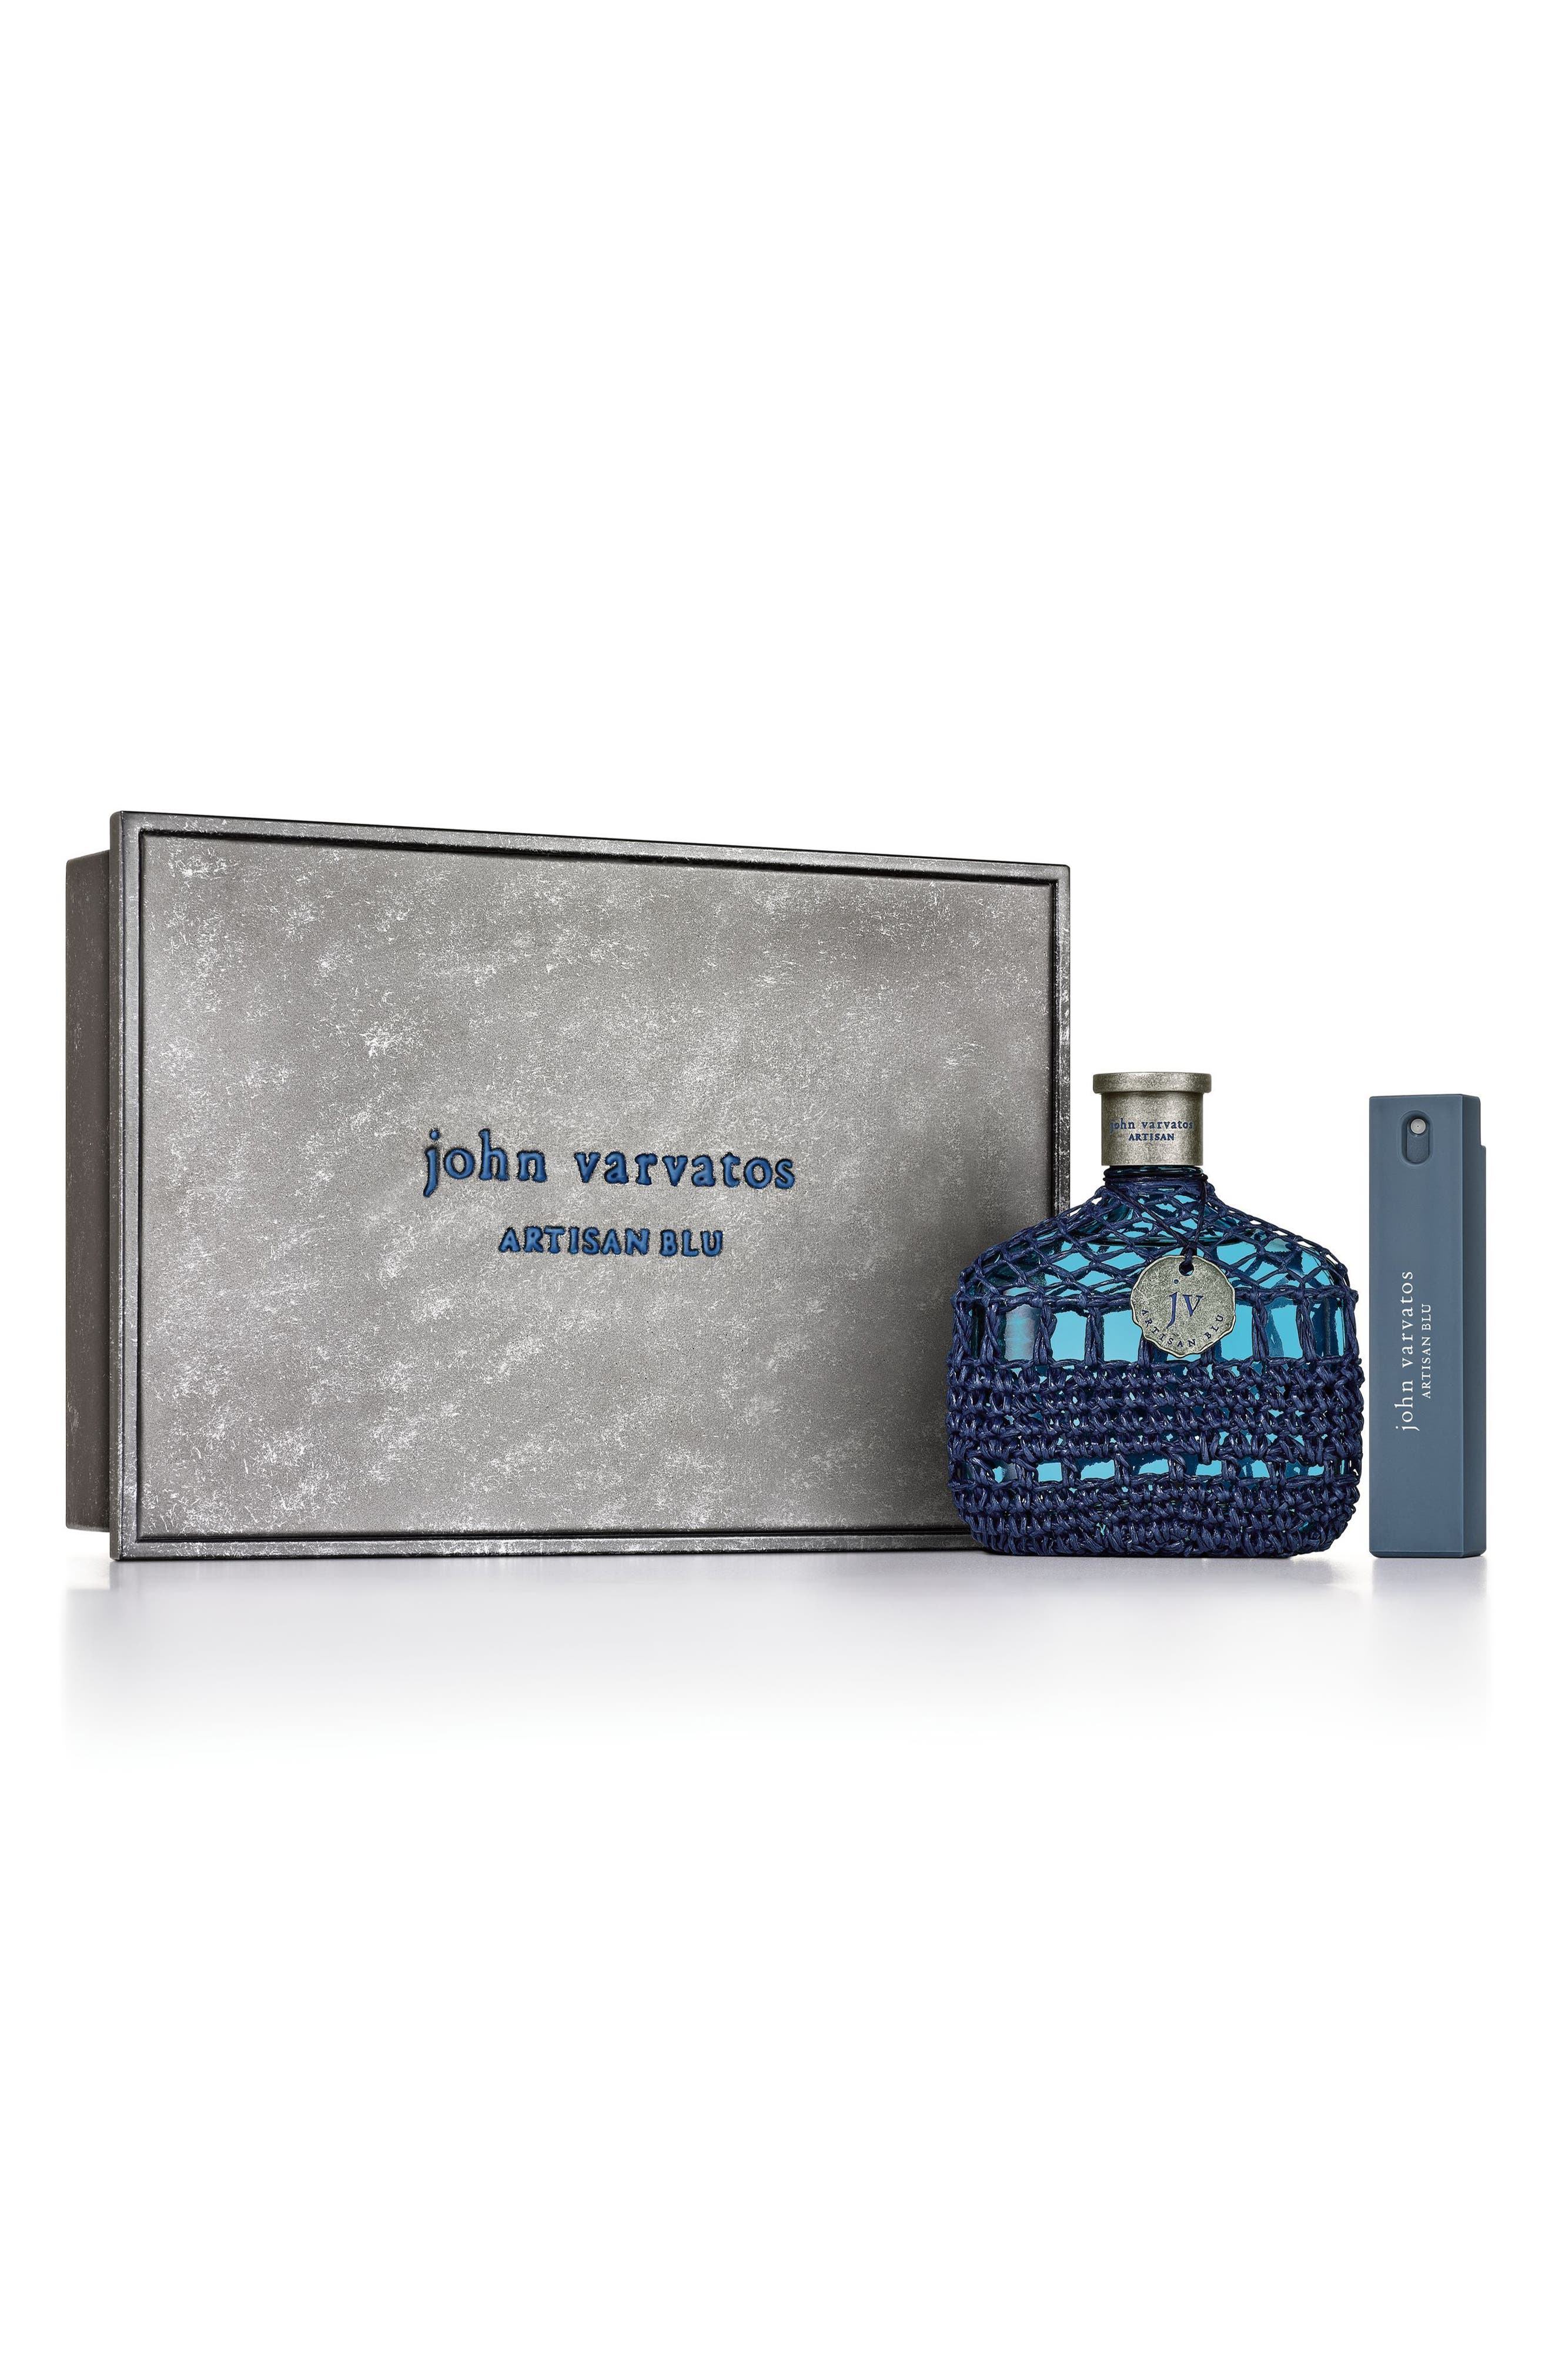 John Varvatos Artisan Blu Eau de Toilette Set ($119 Value)